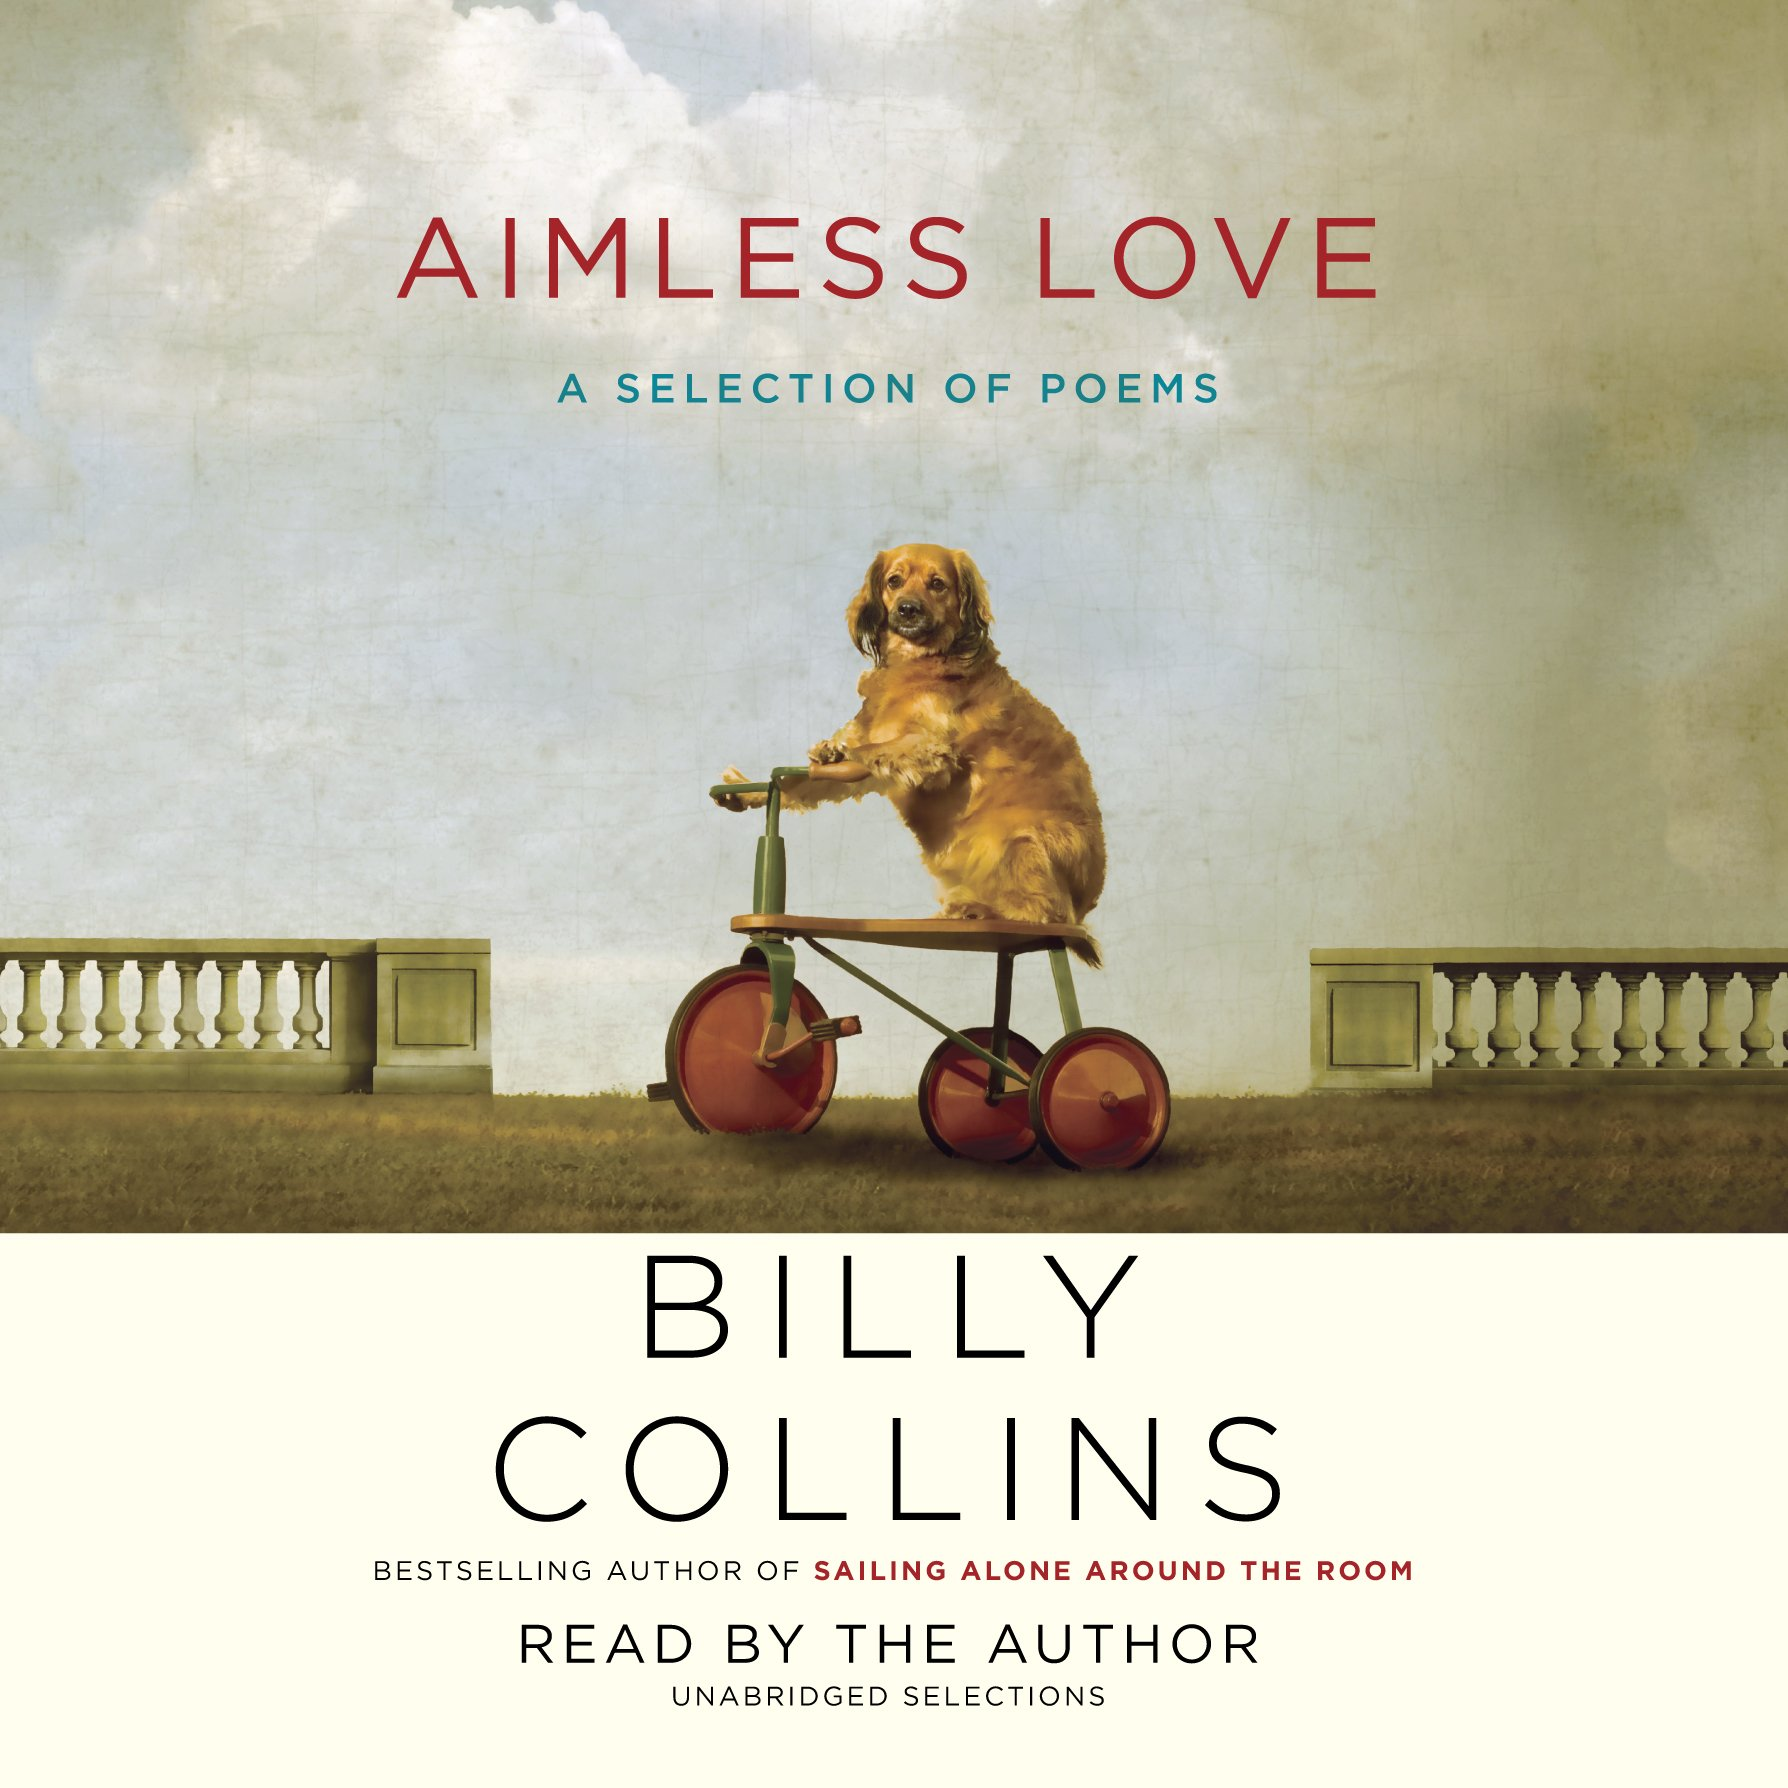 Aimless Love: A Selection of Poems